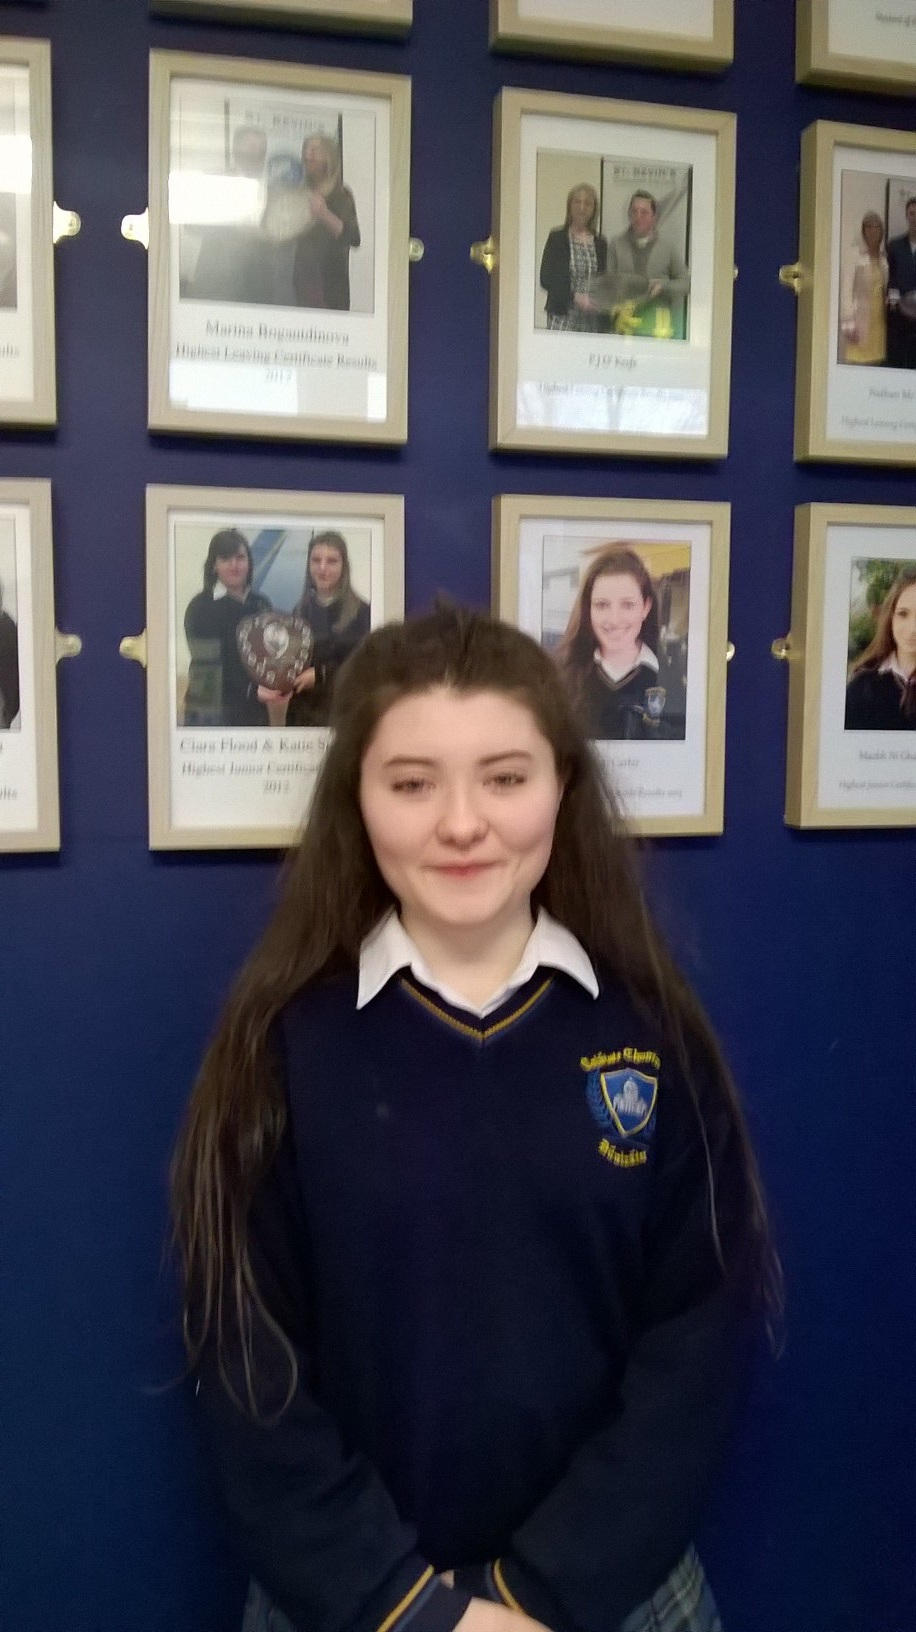 Well done to Nuala Whittle, winner of this year's Poetry Aloud competition